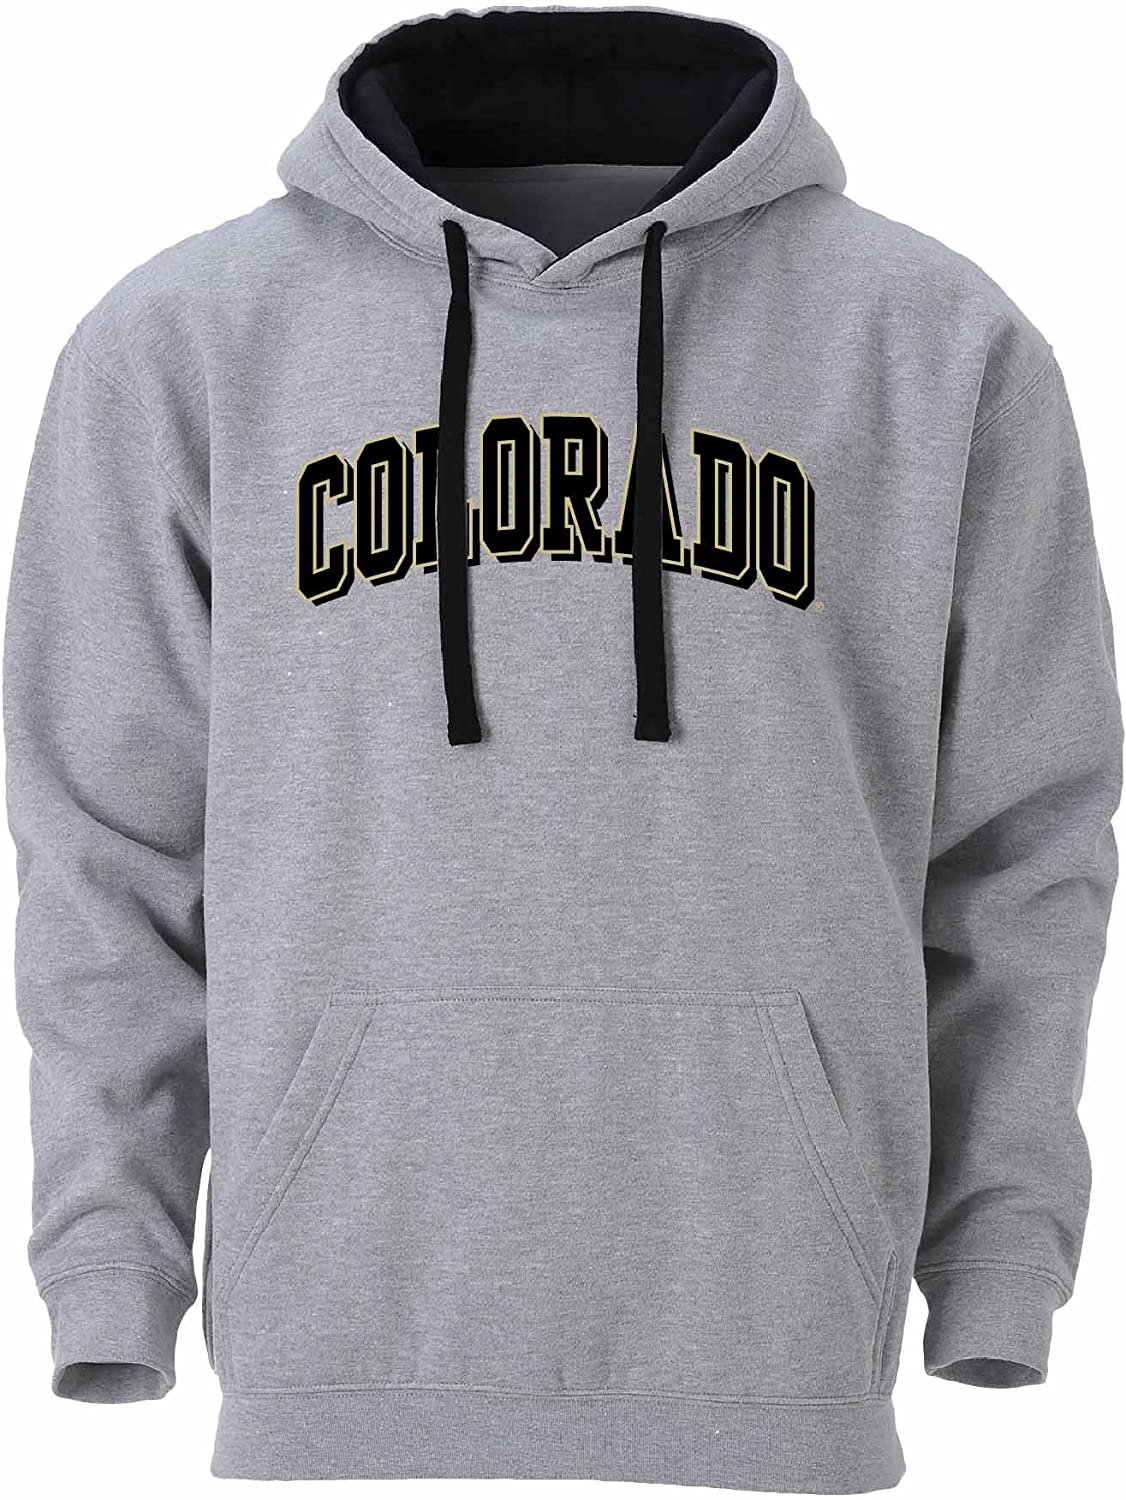 Ouray Sportswear NCAA Max 49% OFF Benchmark Pullover Hoodie Colorblock 5% OFF